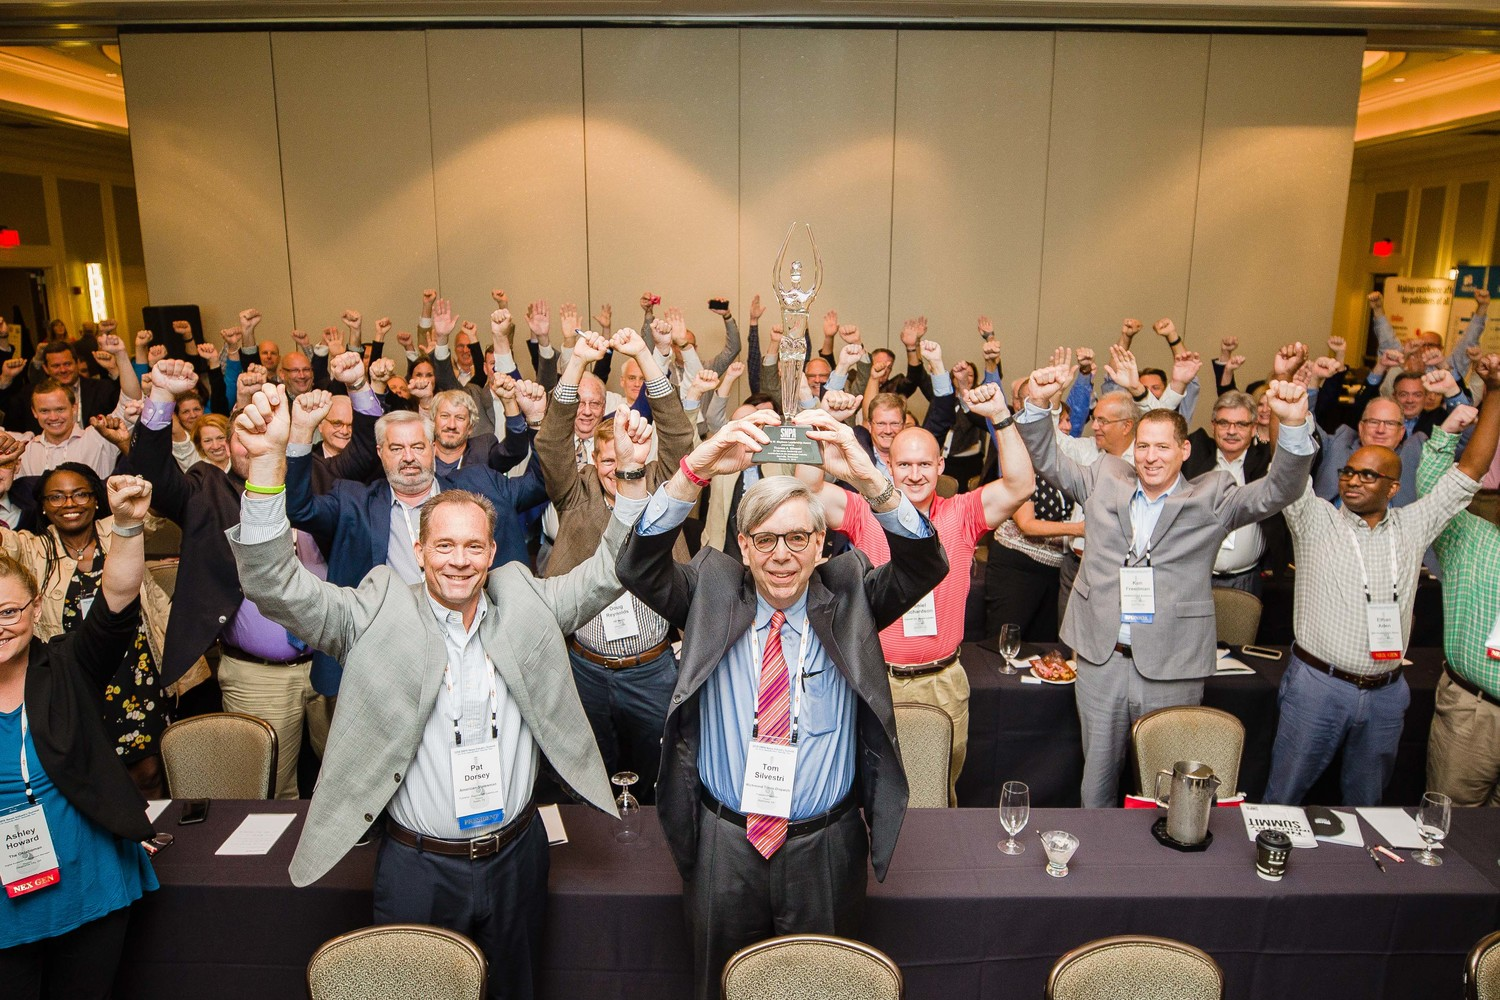 Reaching for the stars:  SNPA members raise their arms with Mayborn Award recipient Tom Silvestri in salute and celebration of our industry.